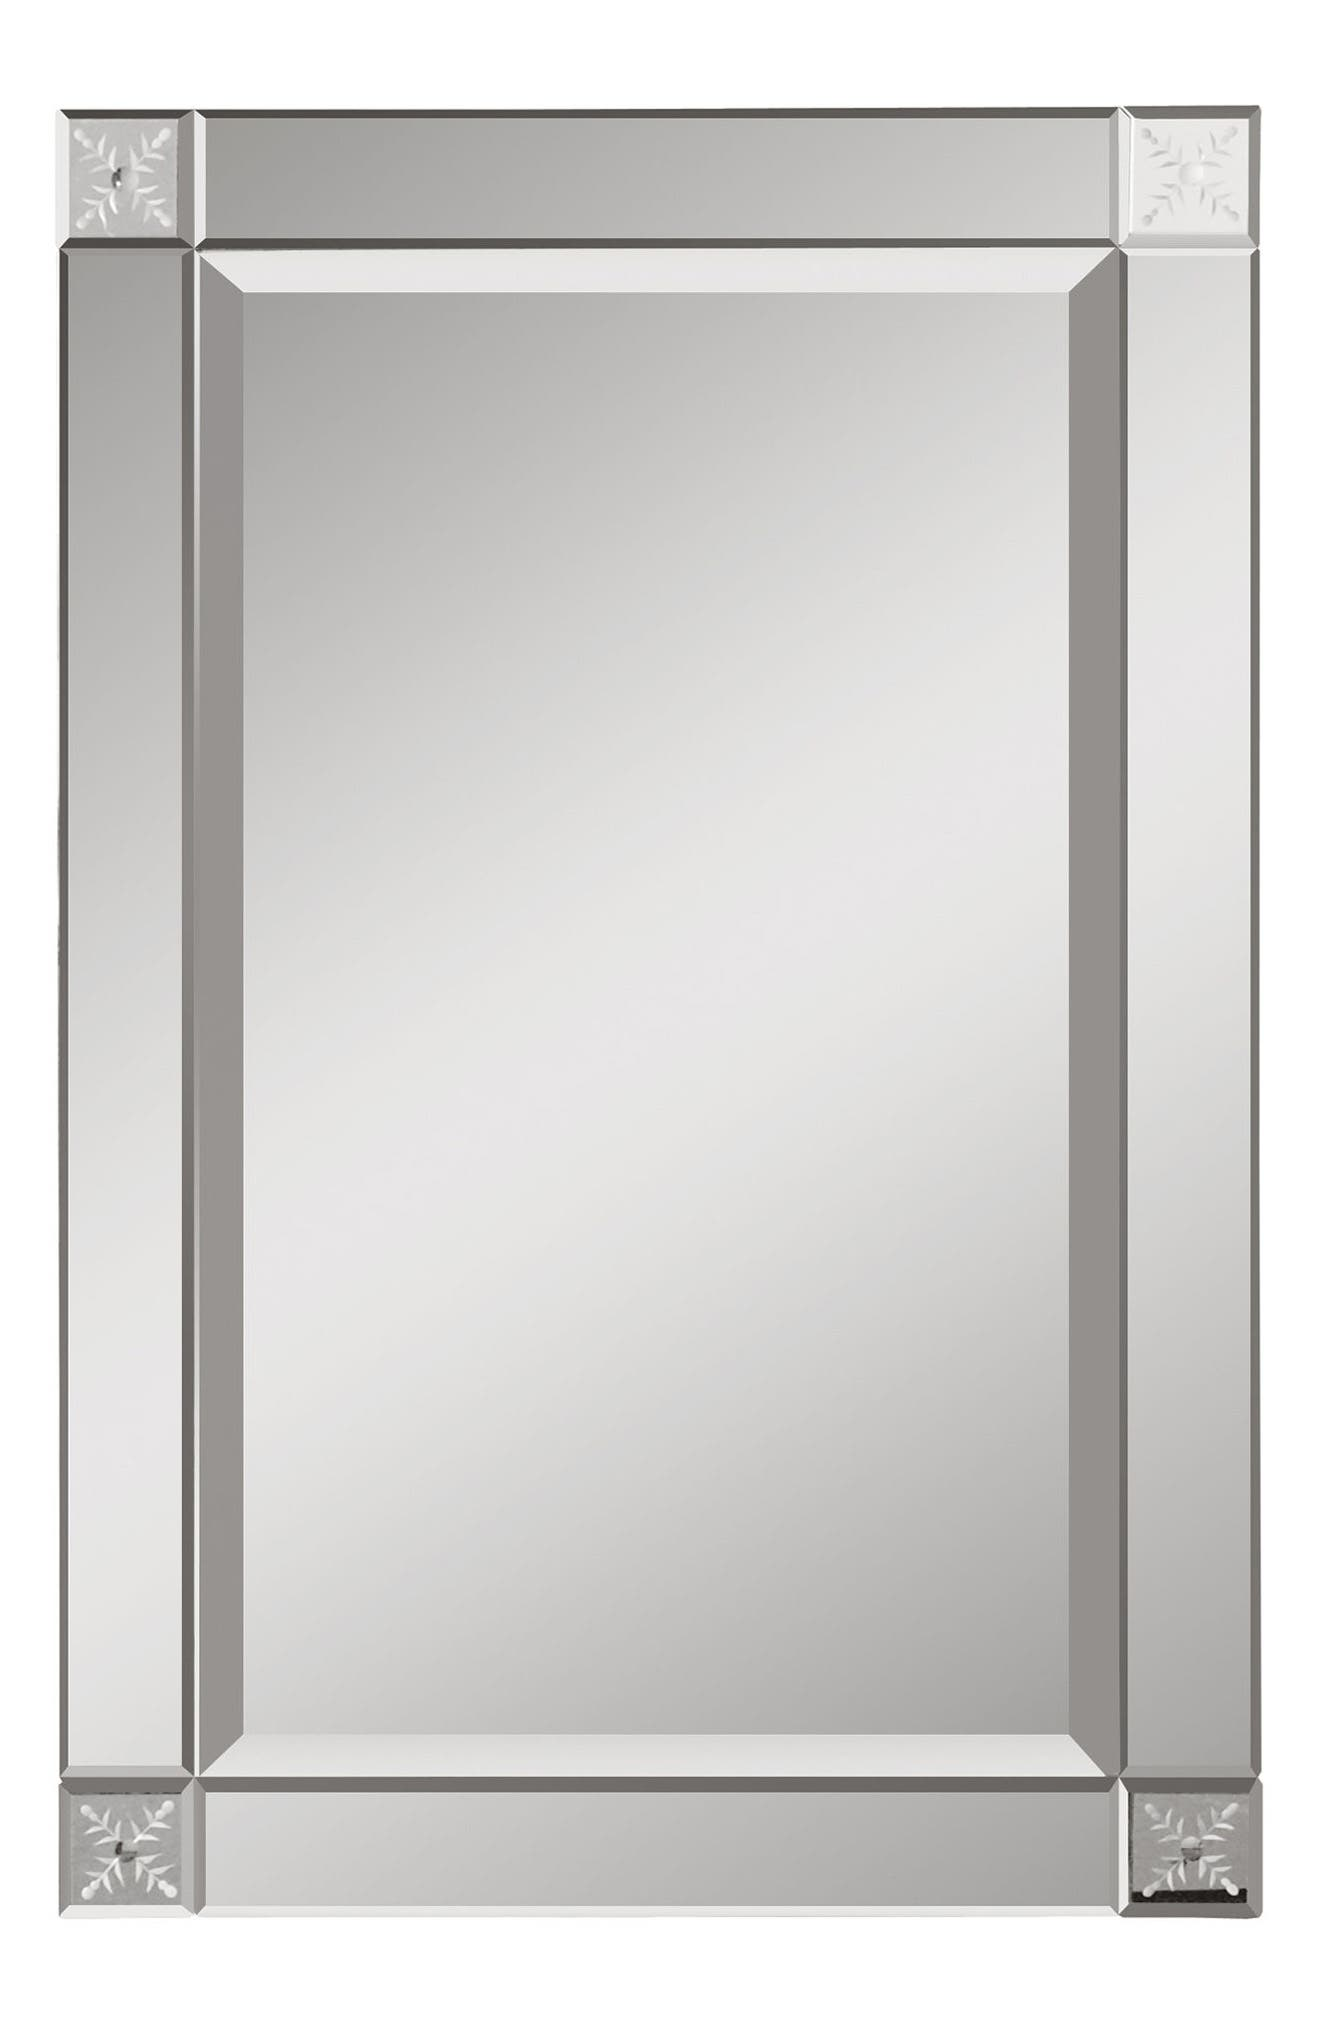 Main Image - Uttermost Emberlynn Frameless Wall Mirror